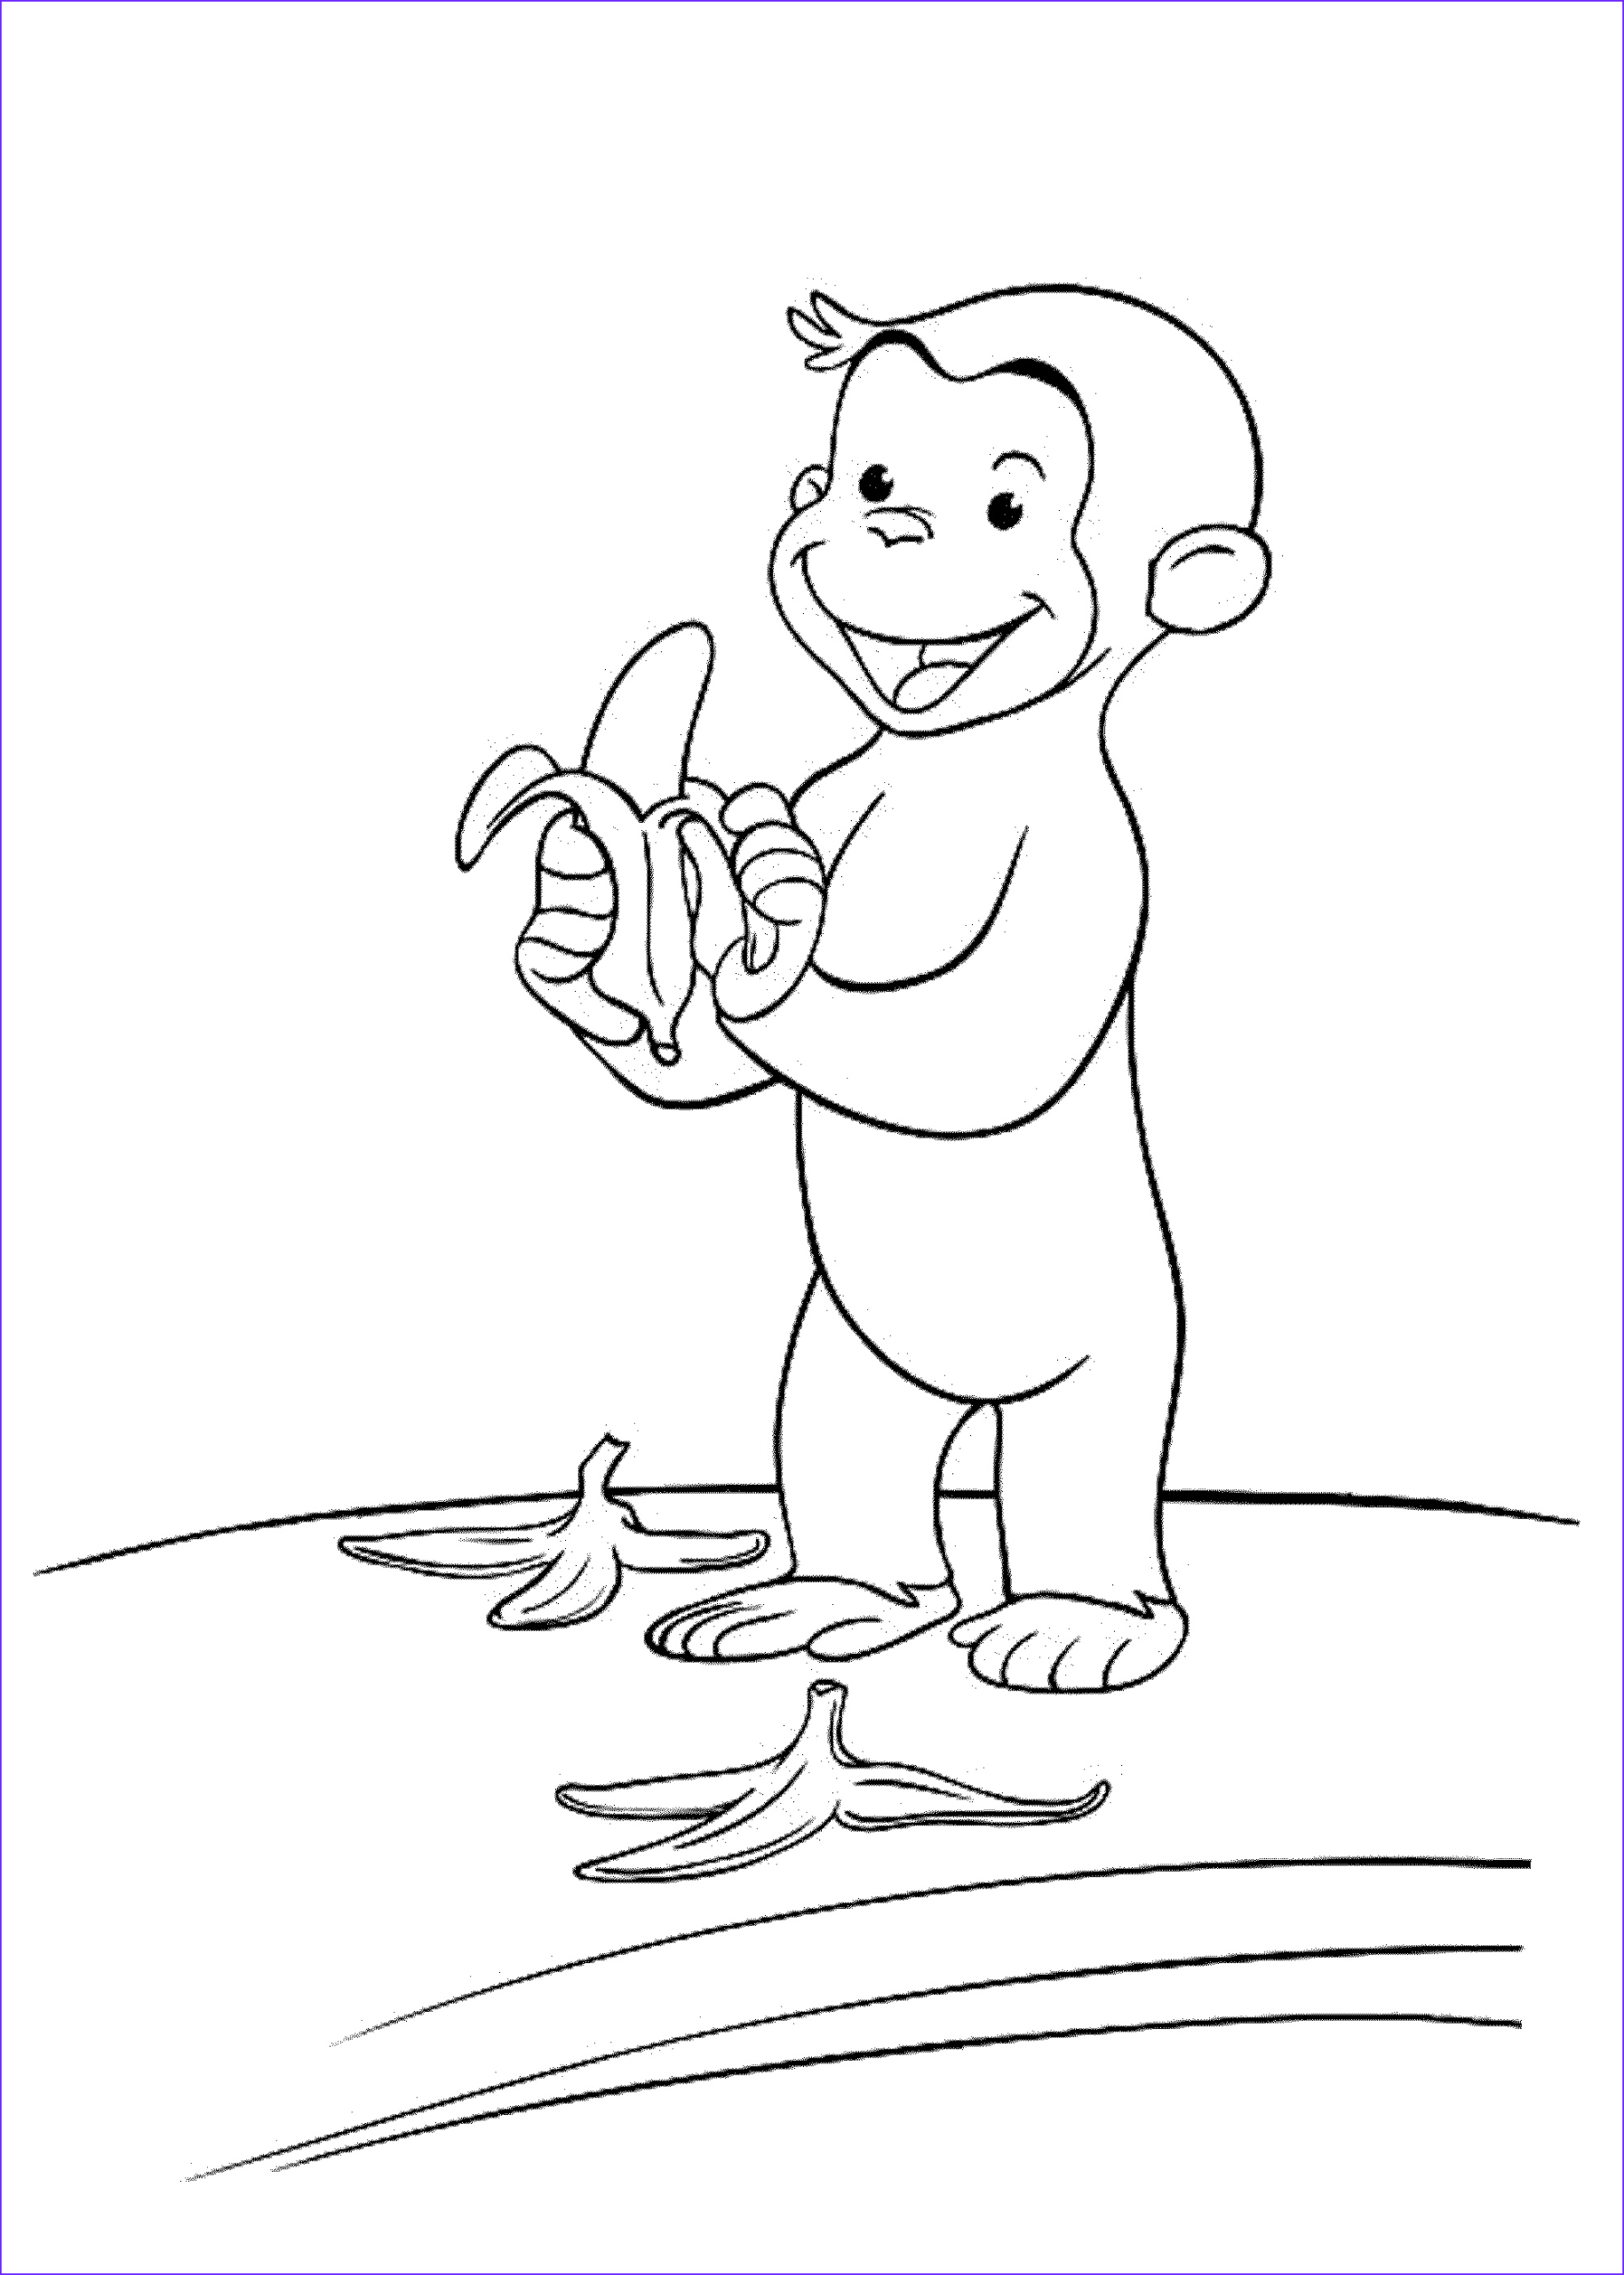 curious george coloring pages stimulate kids fine motor skills